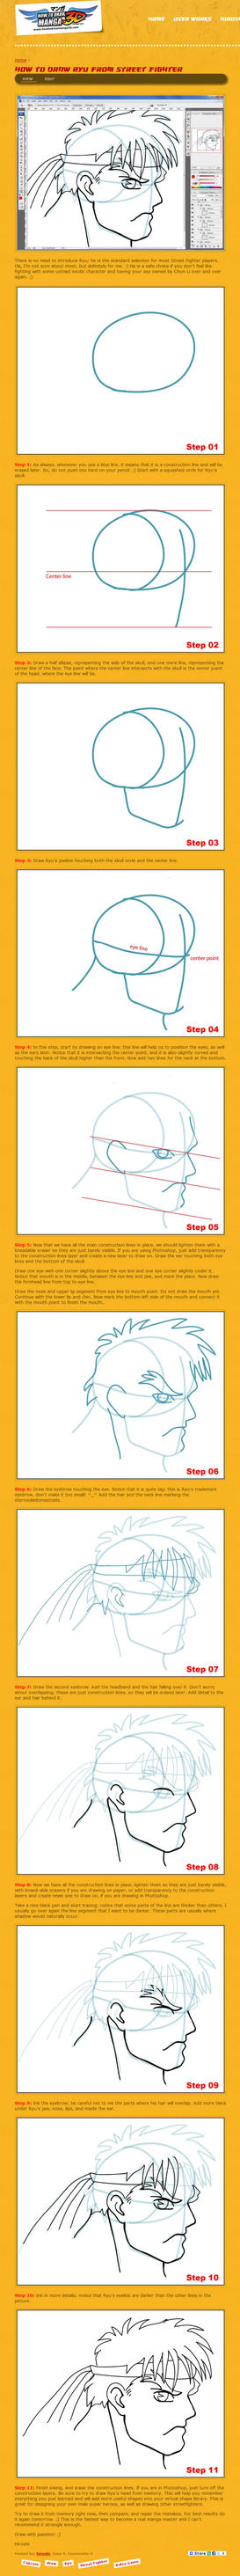 How to draw Ryu from SF 2 by HowToDrawManga3D